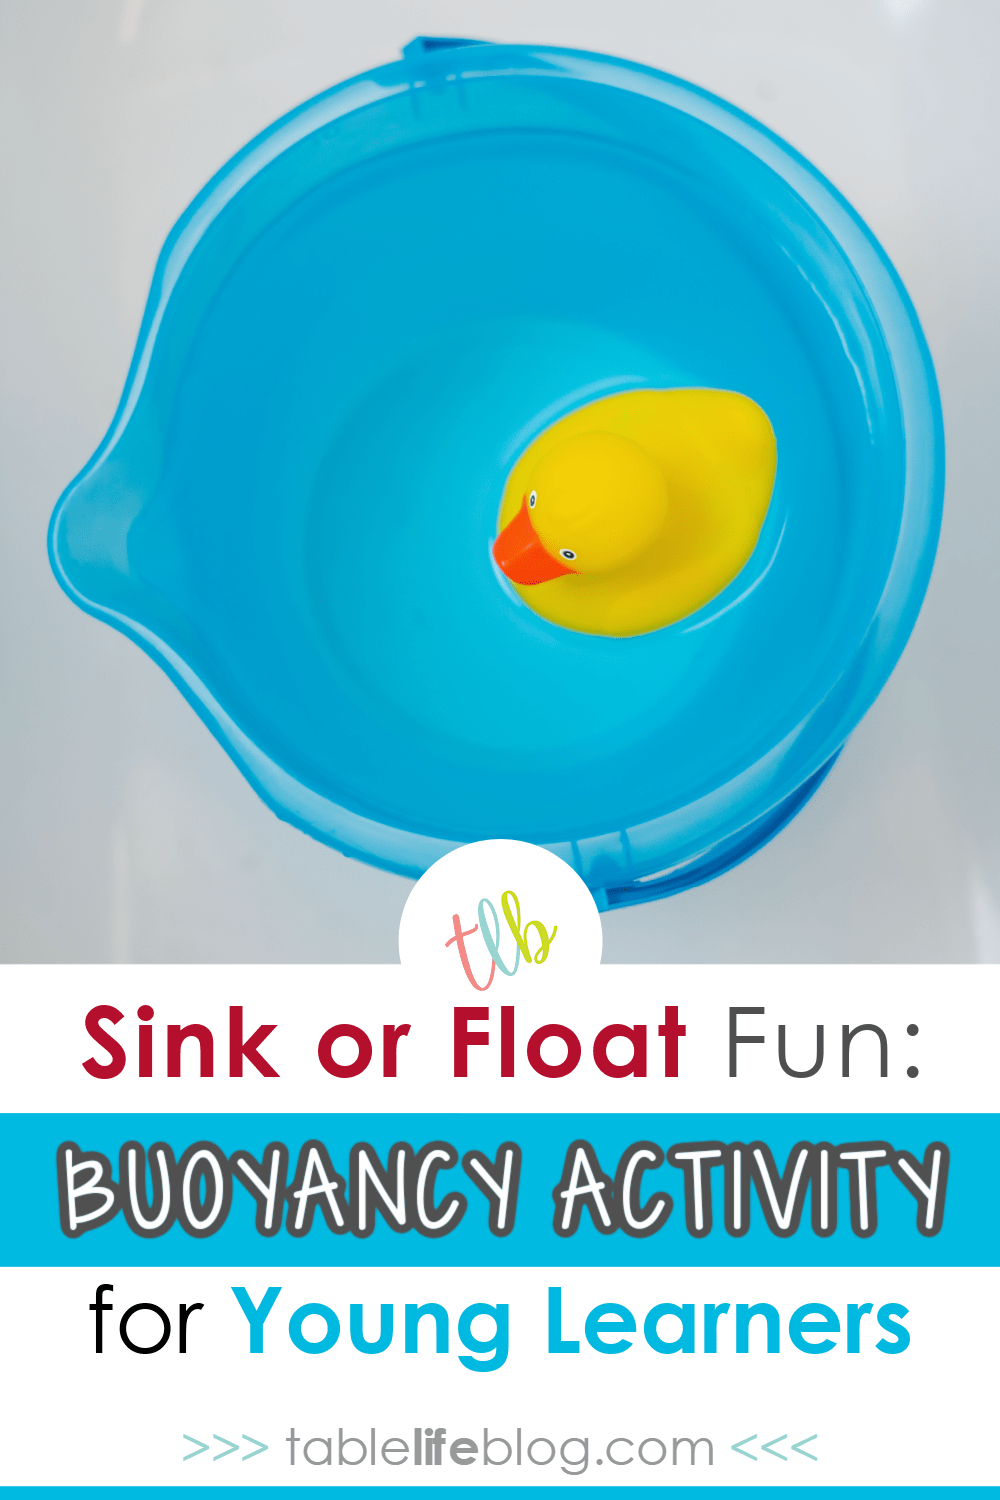 Want to explore buoyancy with your little one? This sink or float experiment can help!